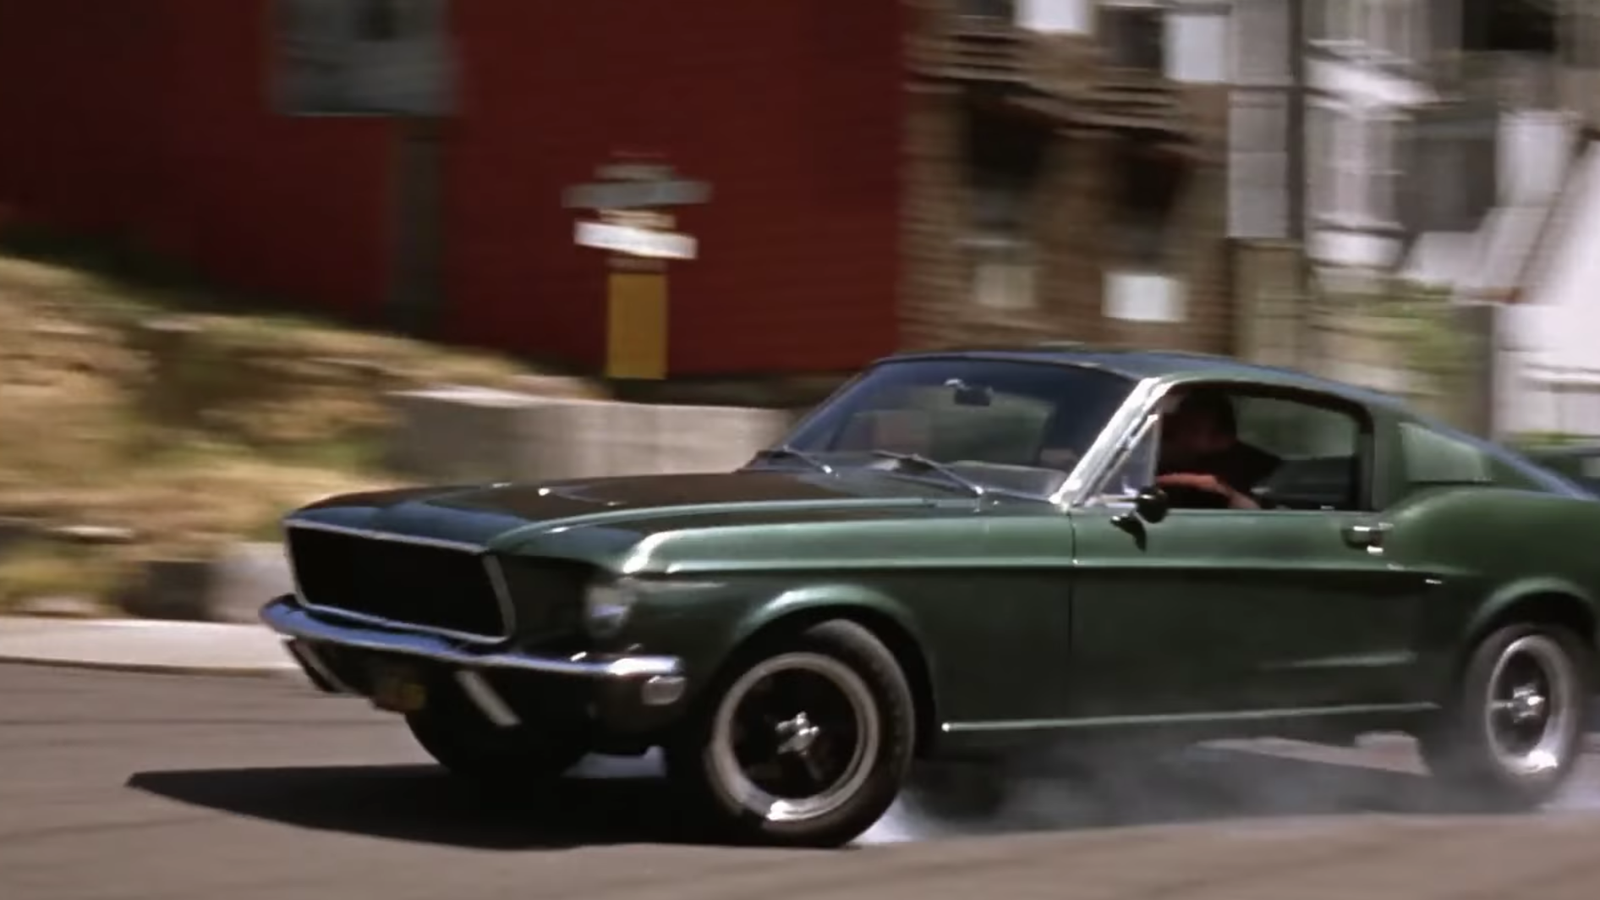 The 'Lost' Bullitt Mustang Might Have Been Discovered In Mexico